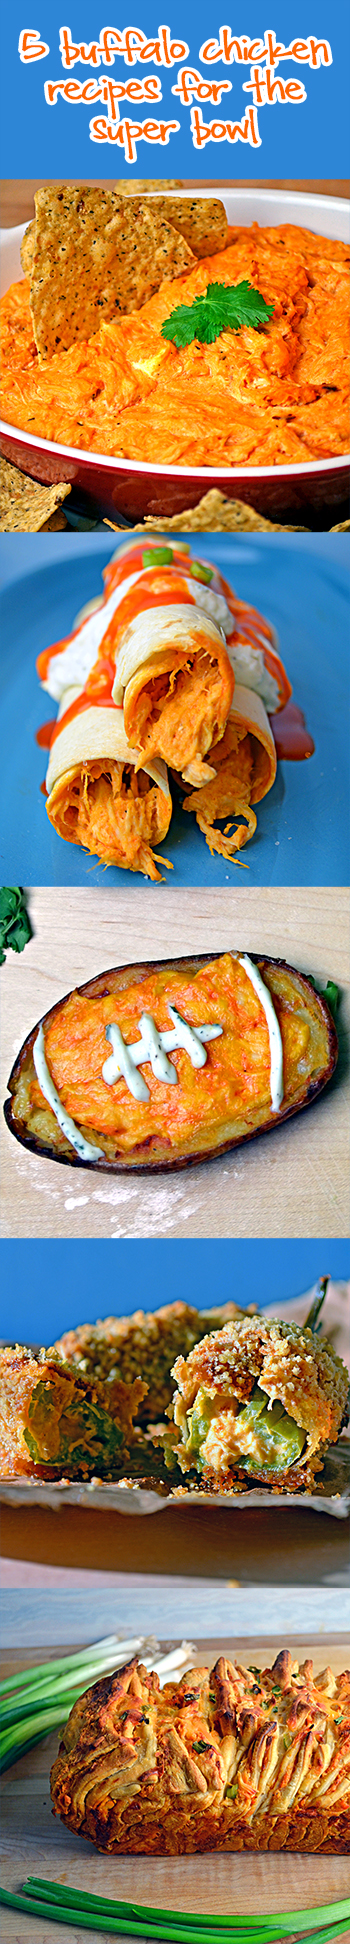 5 Buffalo Chicken Recipes